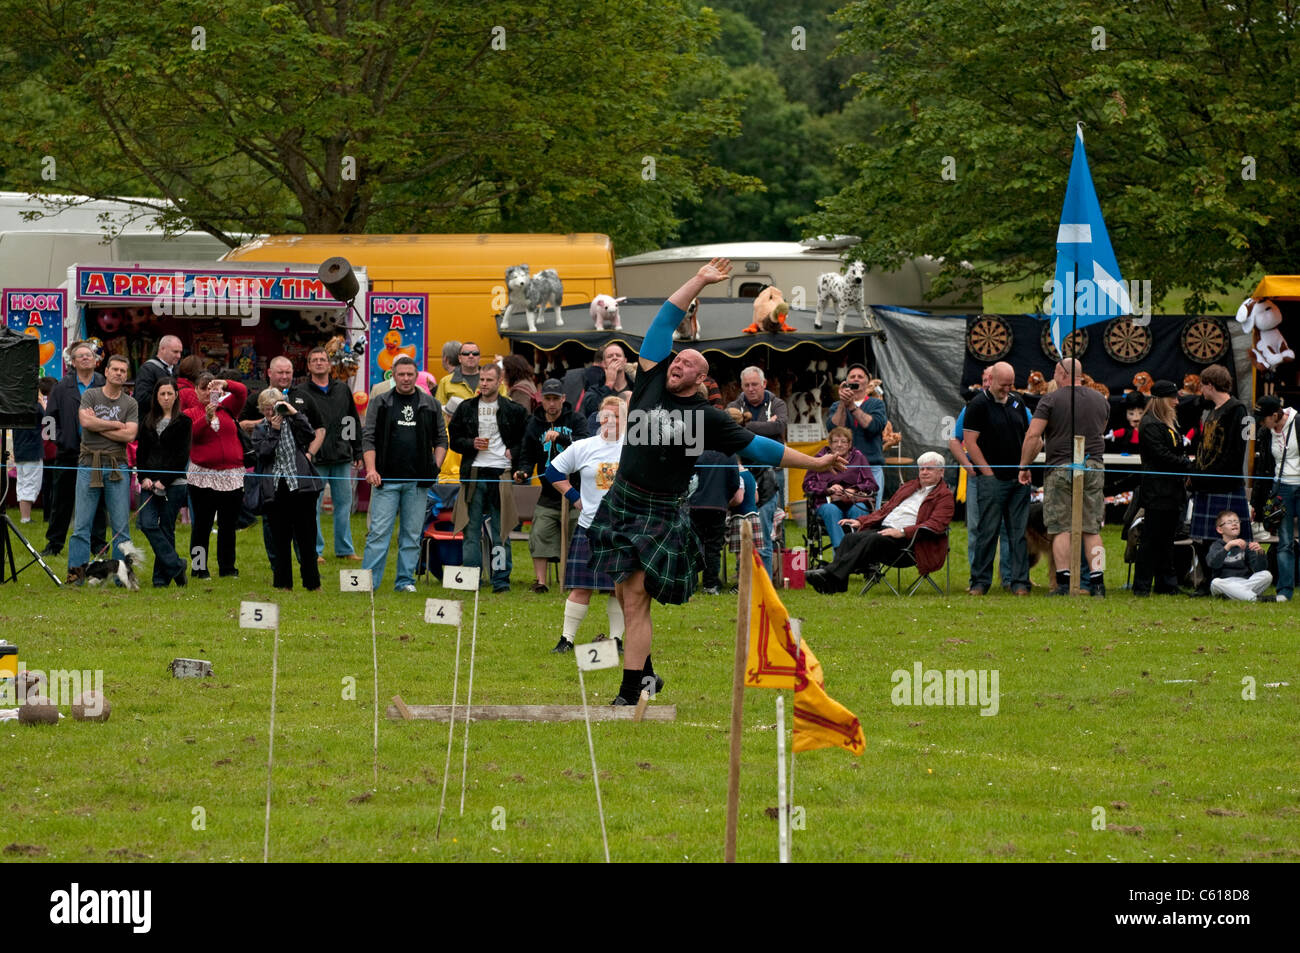 Heavy hammer throwing at Chatelherault Highland Games, Hamilton, Lanarkshire, Scotland, United Kingdom, Western - Stock Image